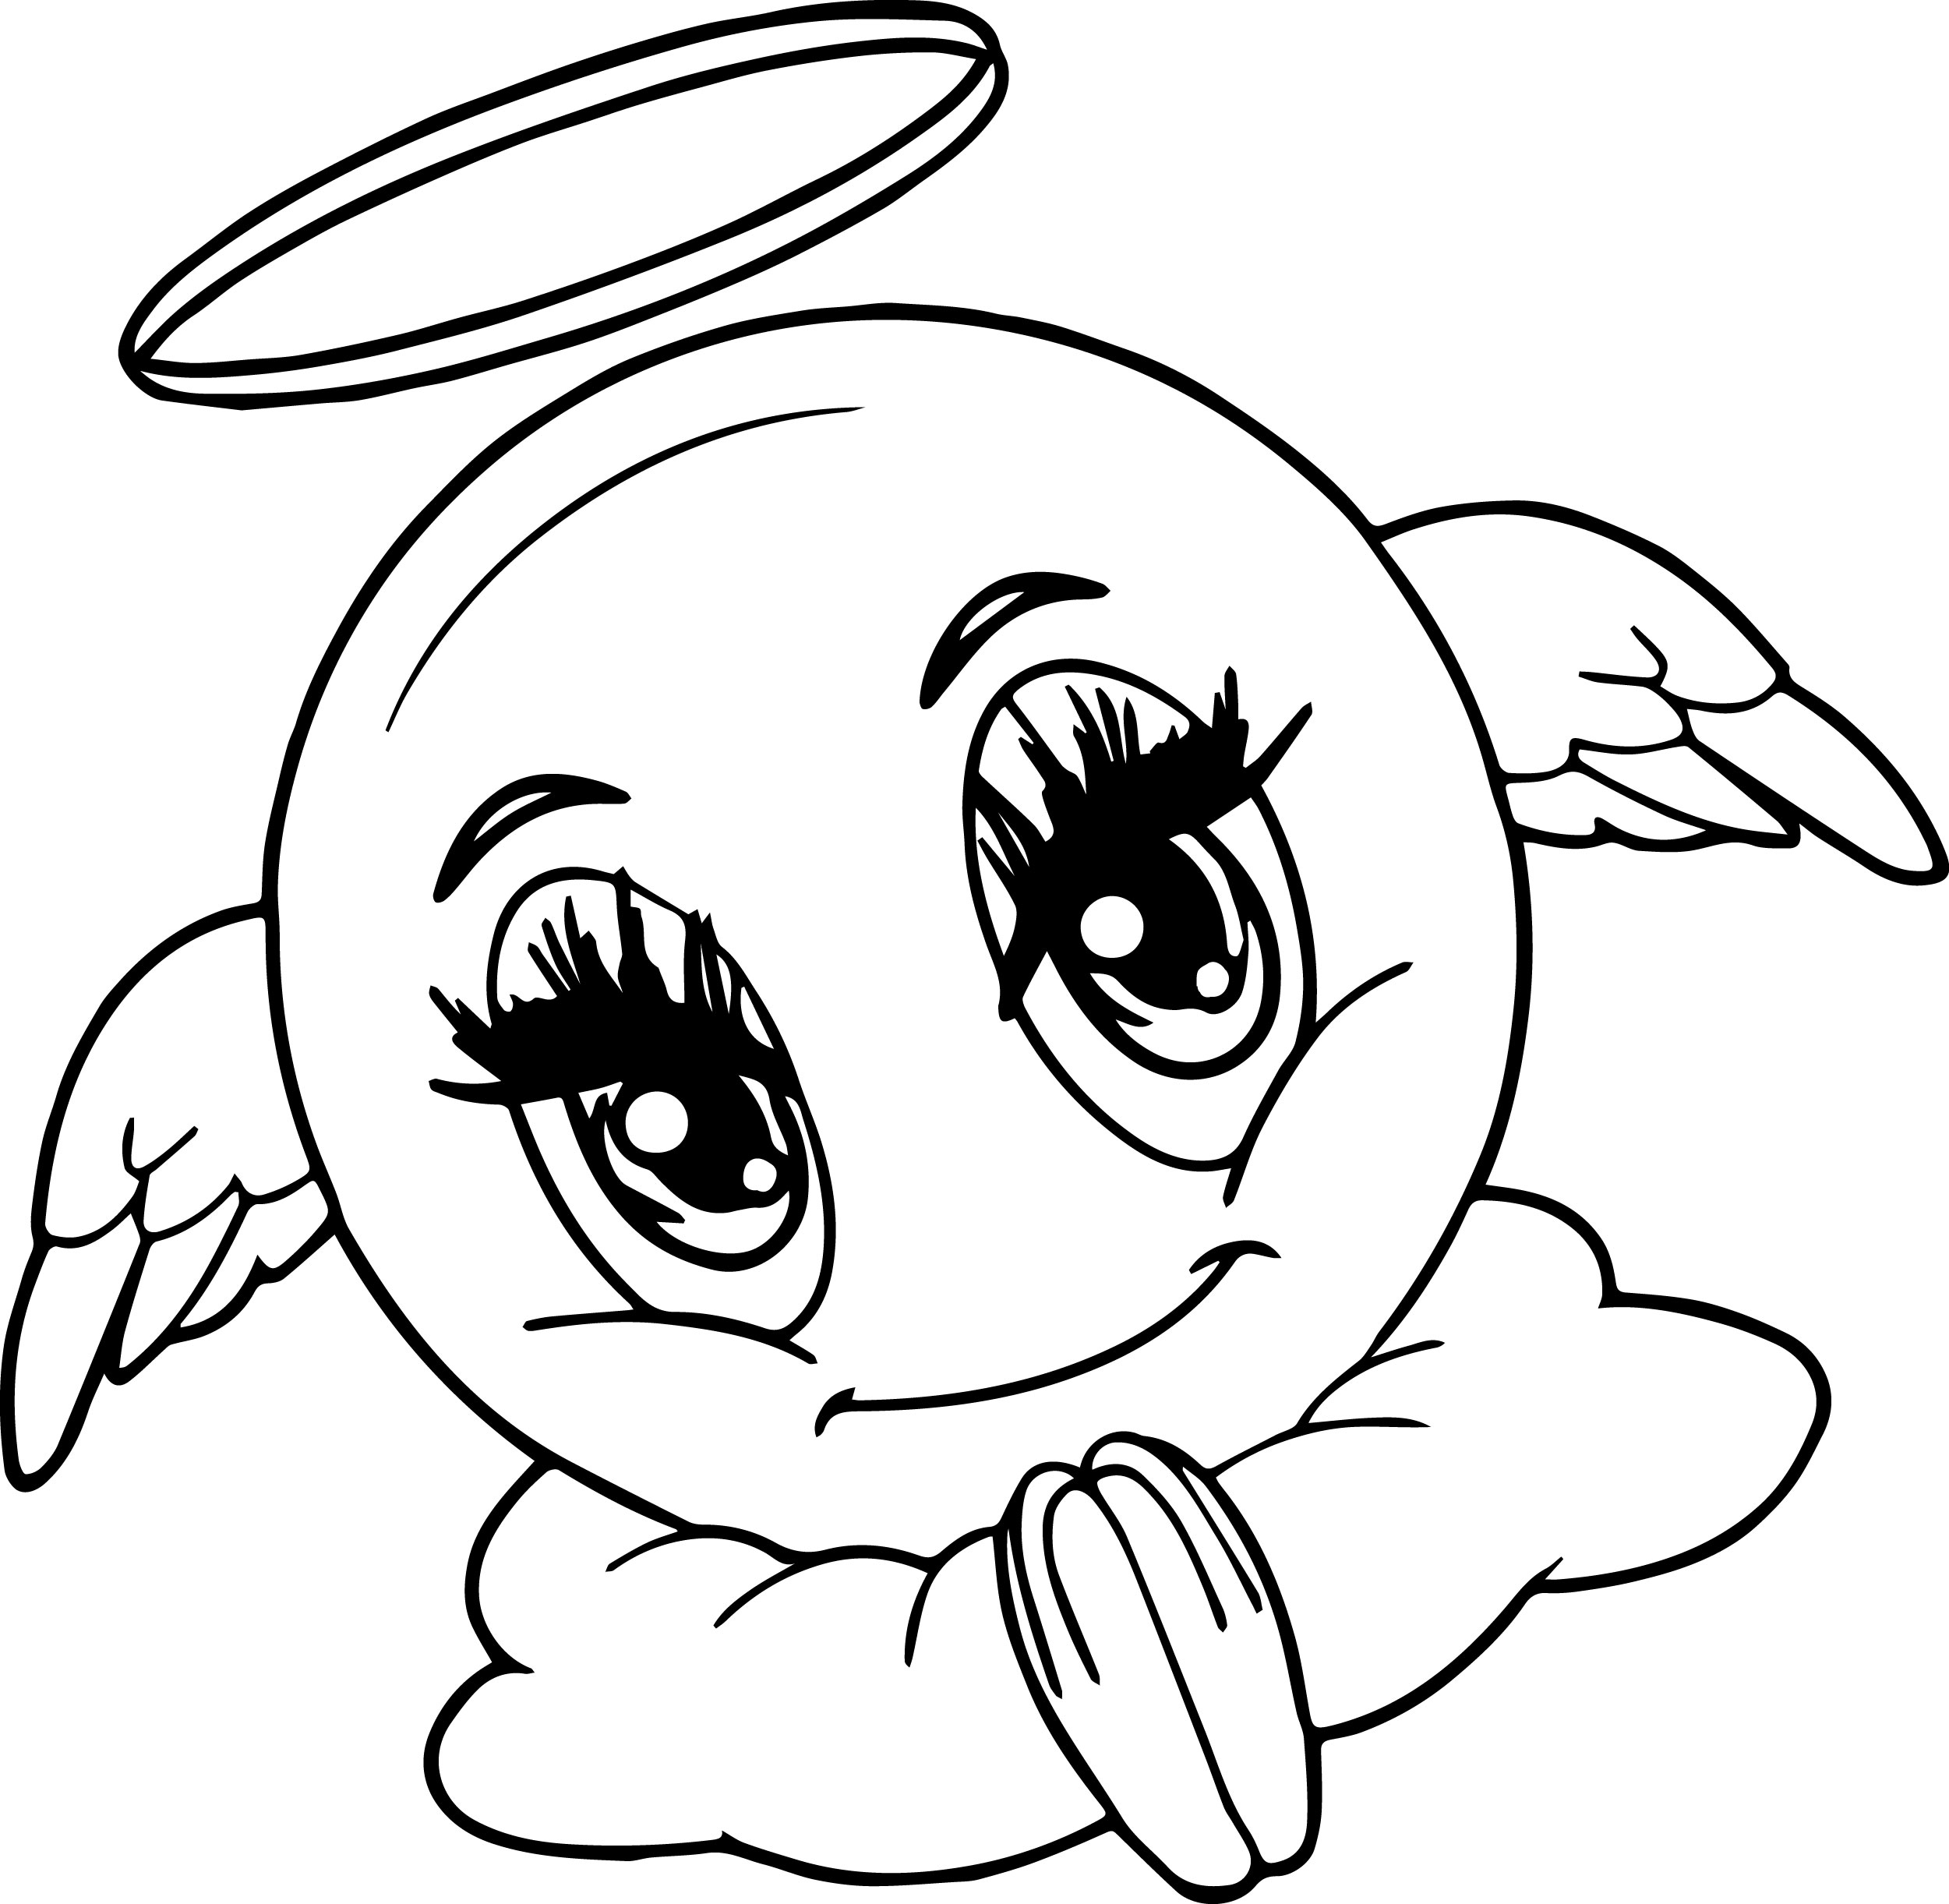 Angel Emoticon Face Coloring Page